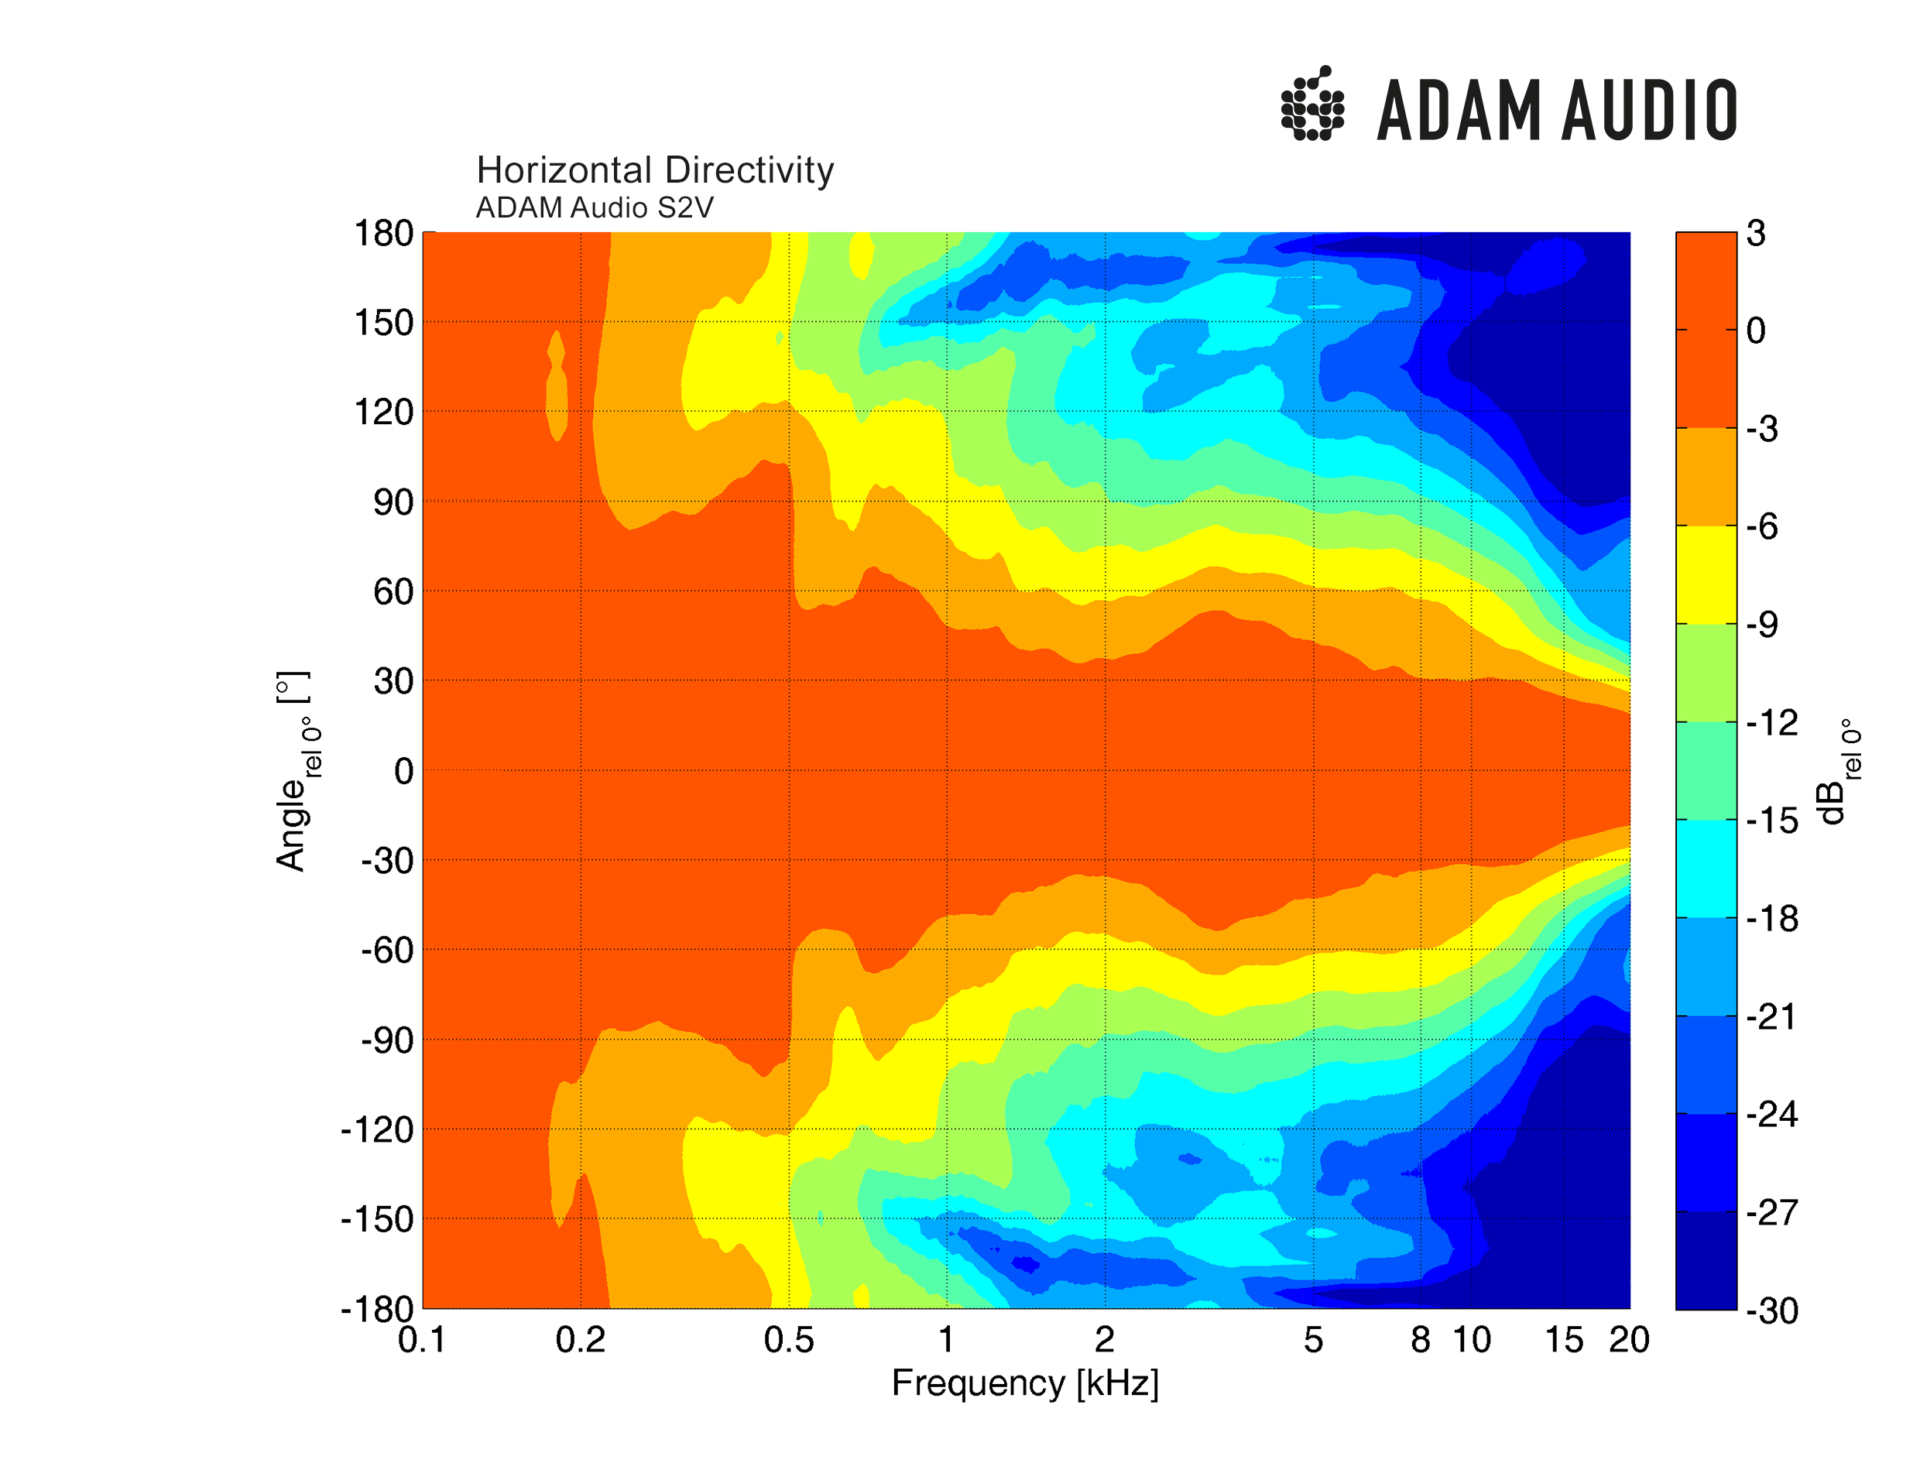 adam-audio-s2v-studio-monitor-horizontal-directivity-1920x1463.png